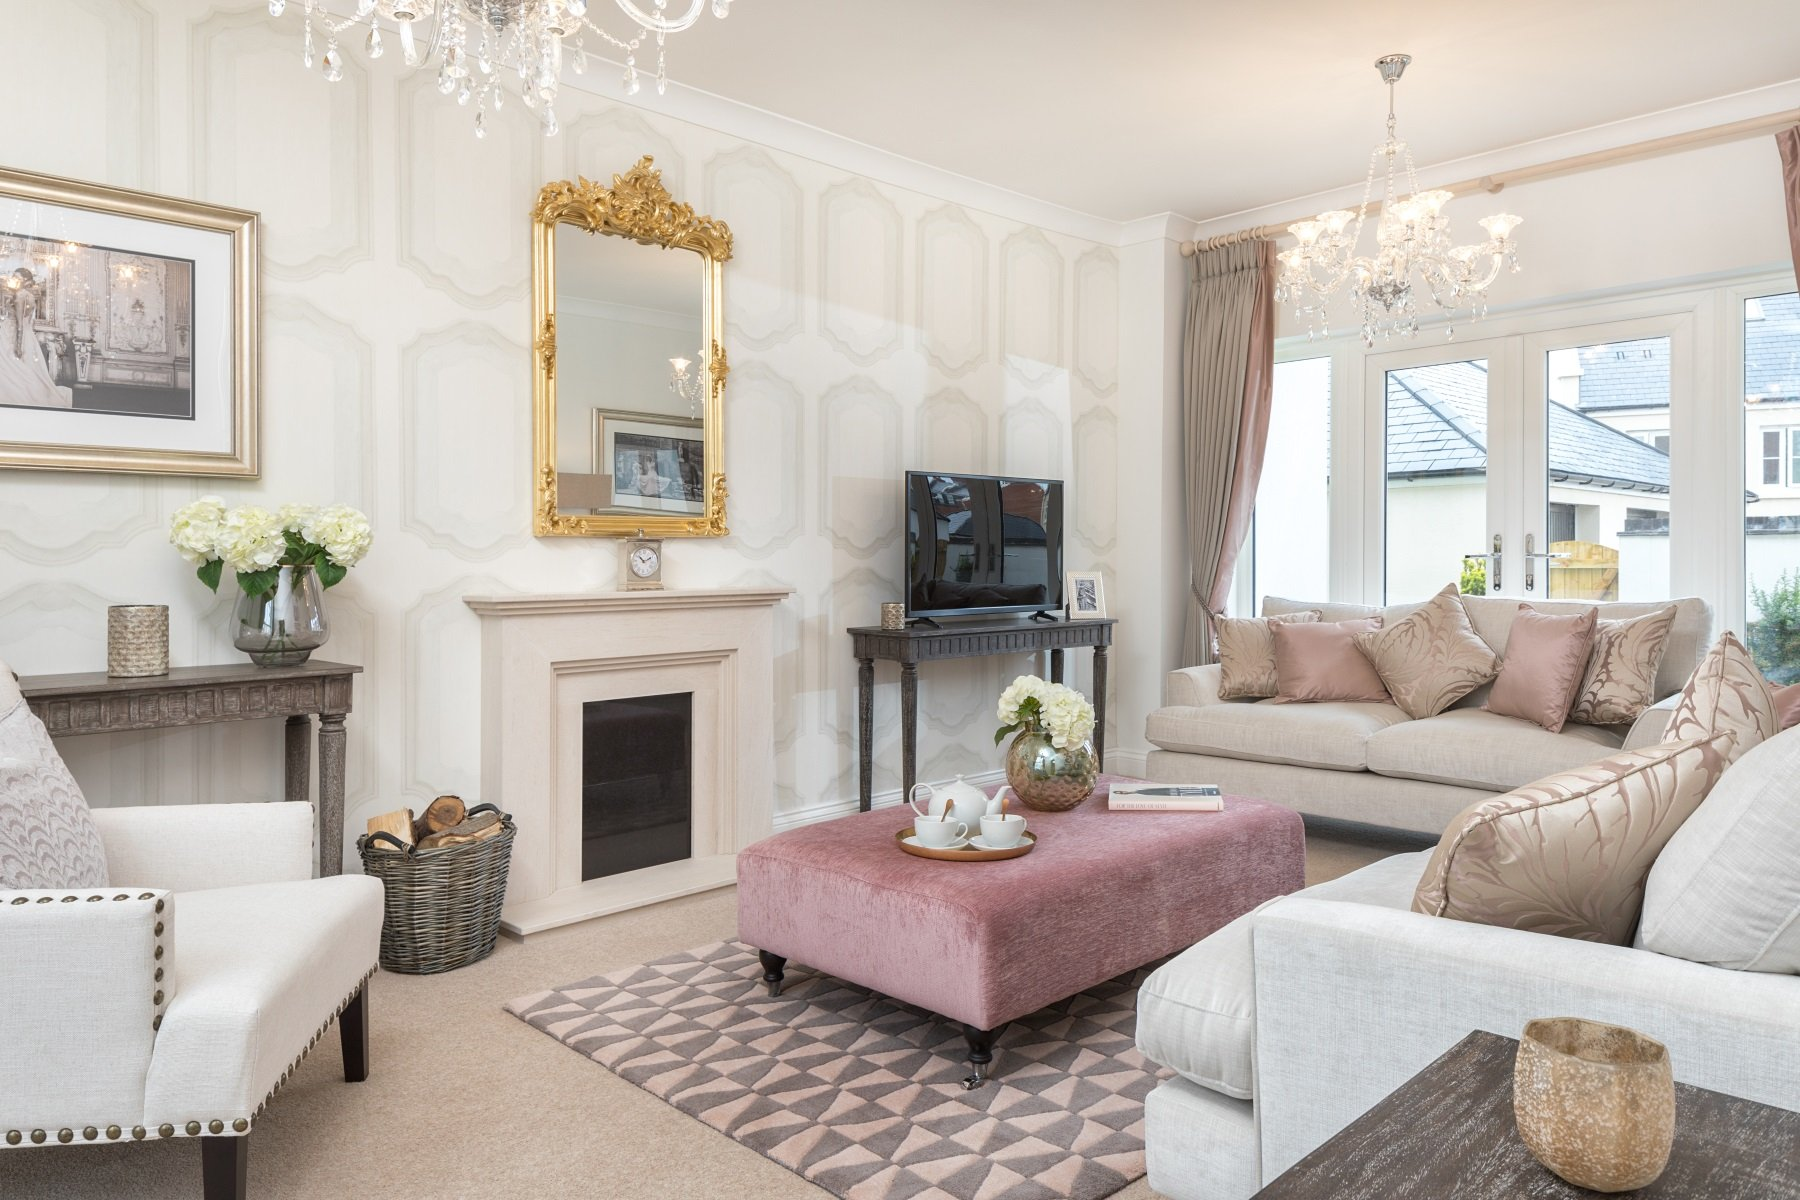 TW Exeter - Sherford - The Hawthorn - Living room